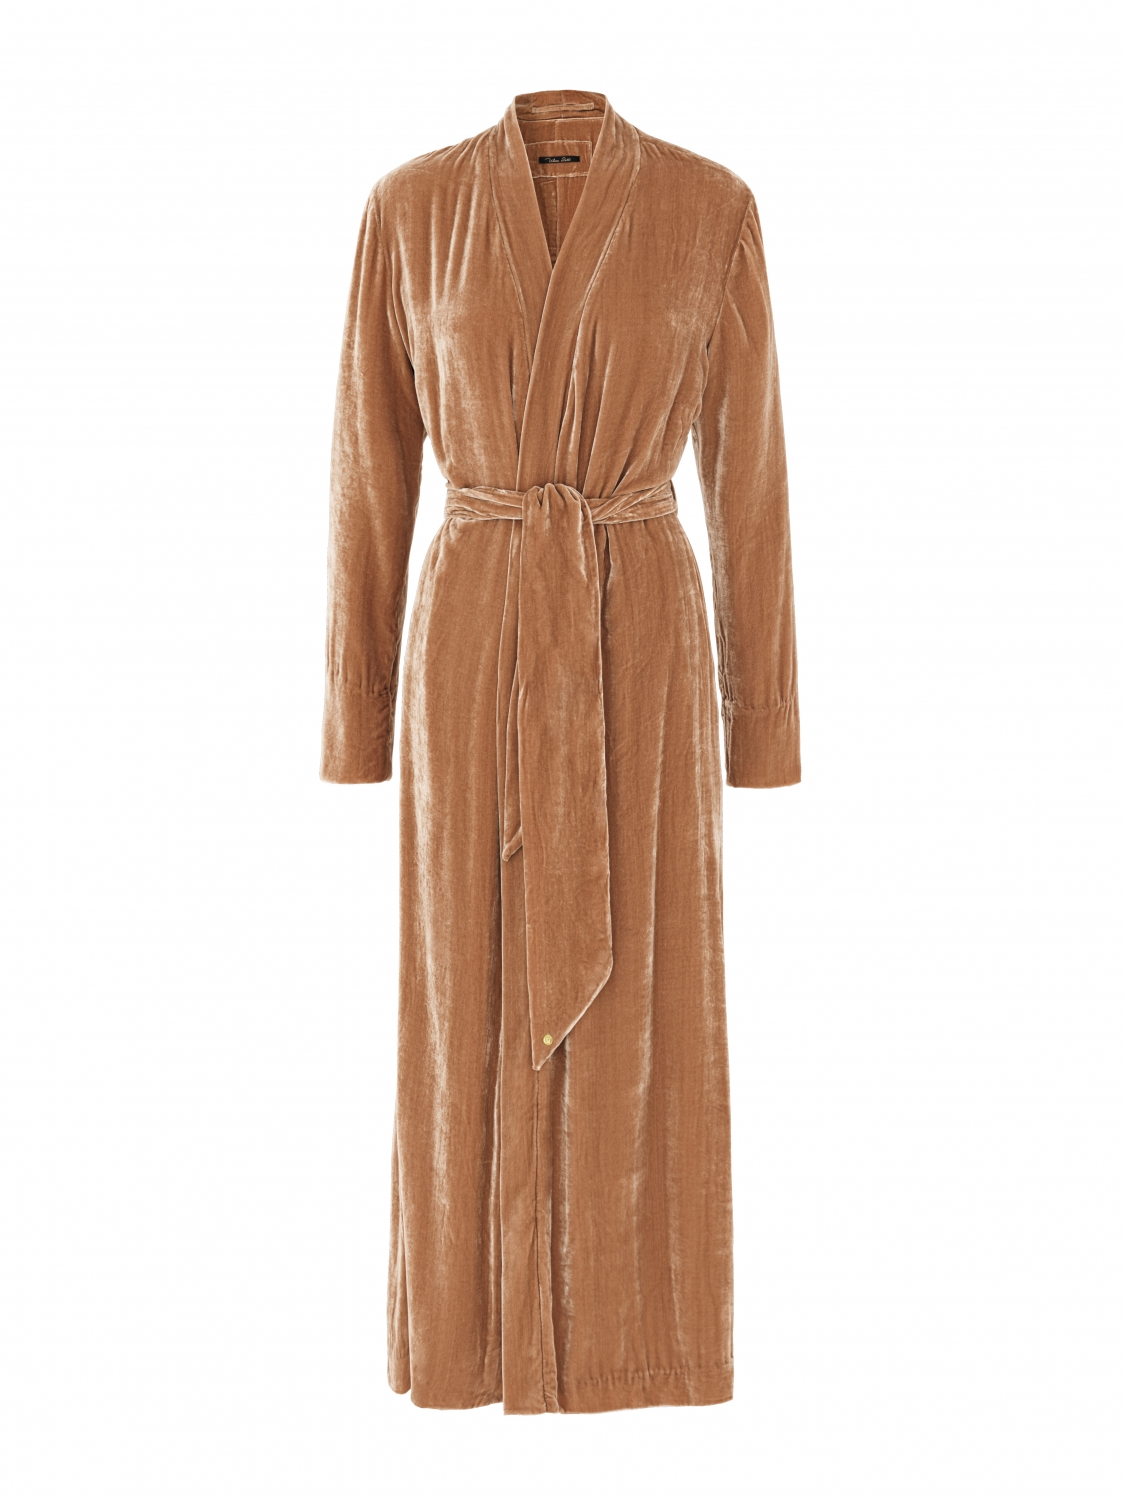 Luxury Dressing Gown Copper silk velvet - Shop all - Vibeke Scott